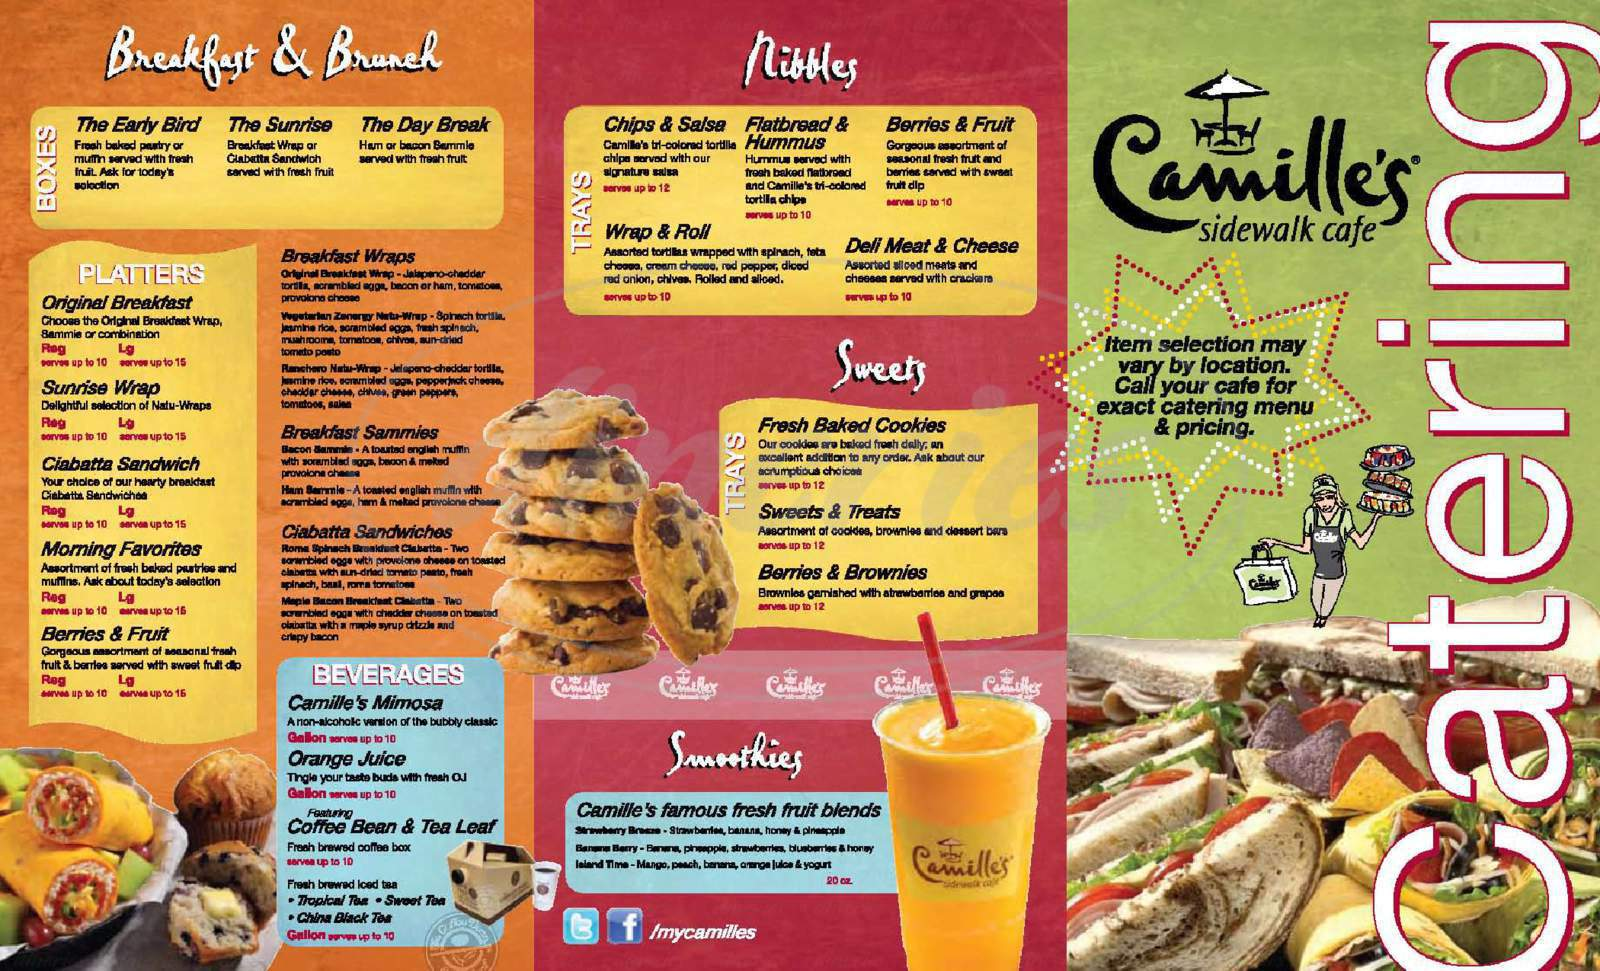 menu for Camille's